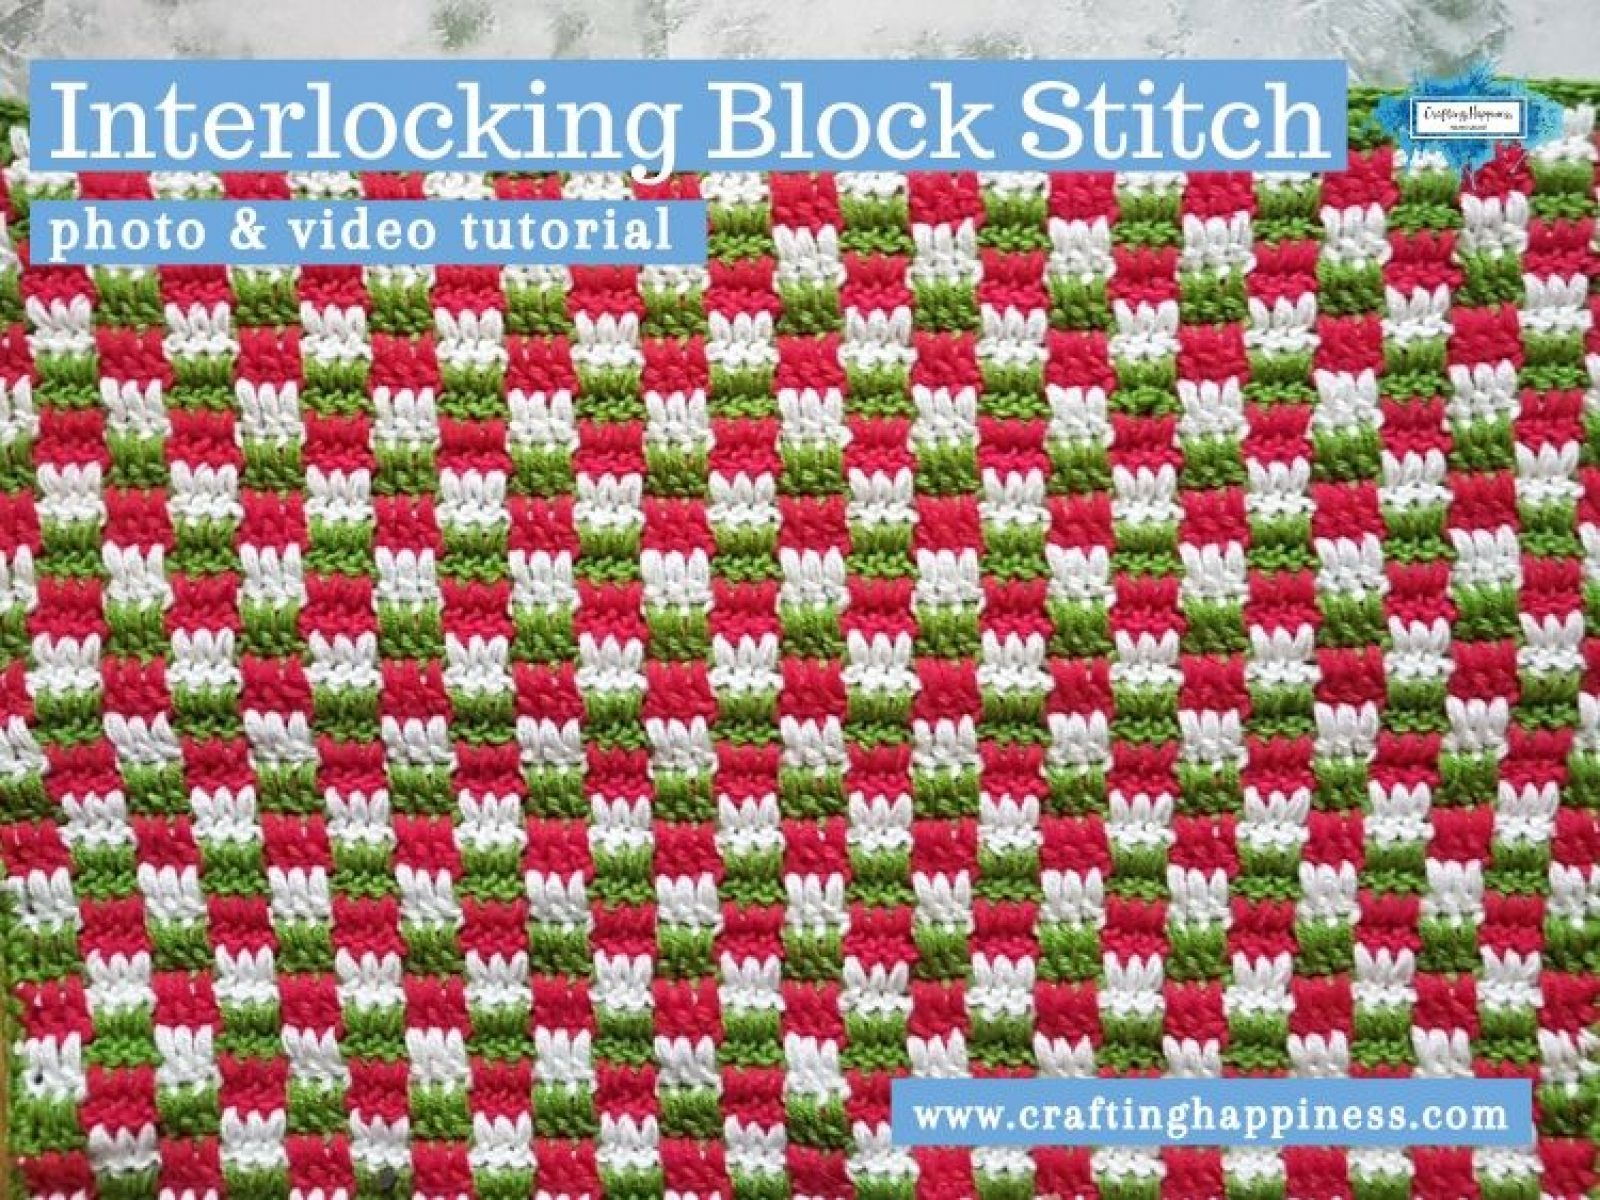 Interlocking Block Stitch by Crafting Happiness FACEBOOK POSTER